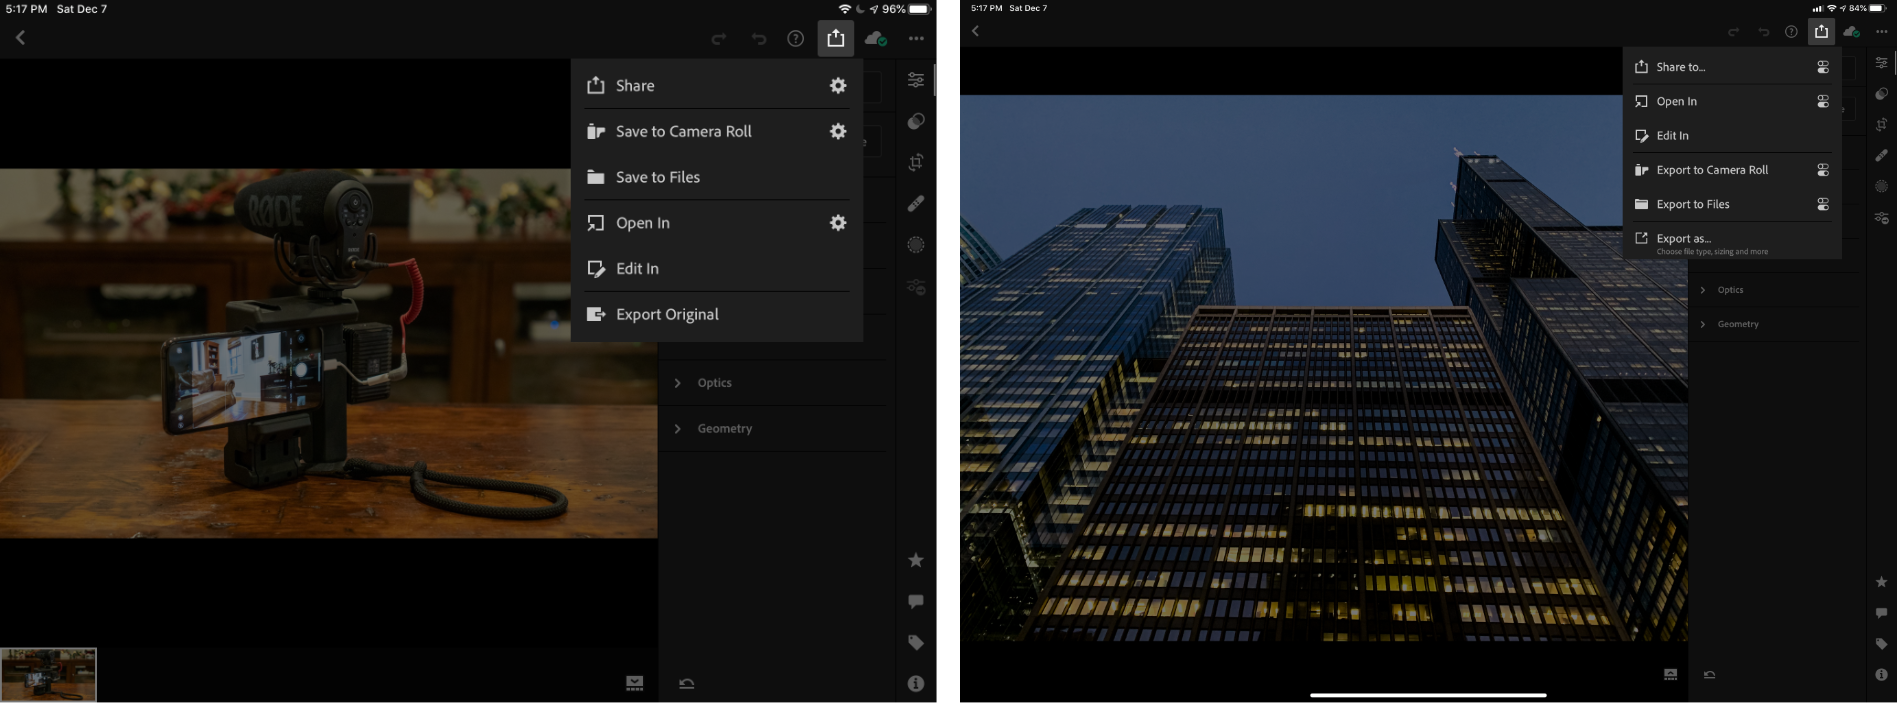 Lightroom 5's share menu (left) and Lightroom 5.1's new share menu (right).